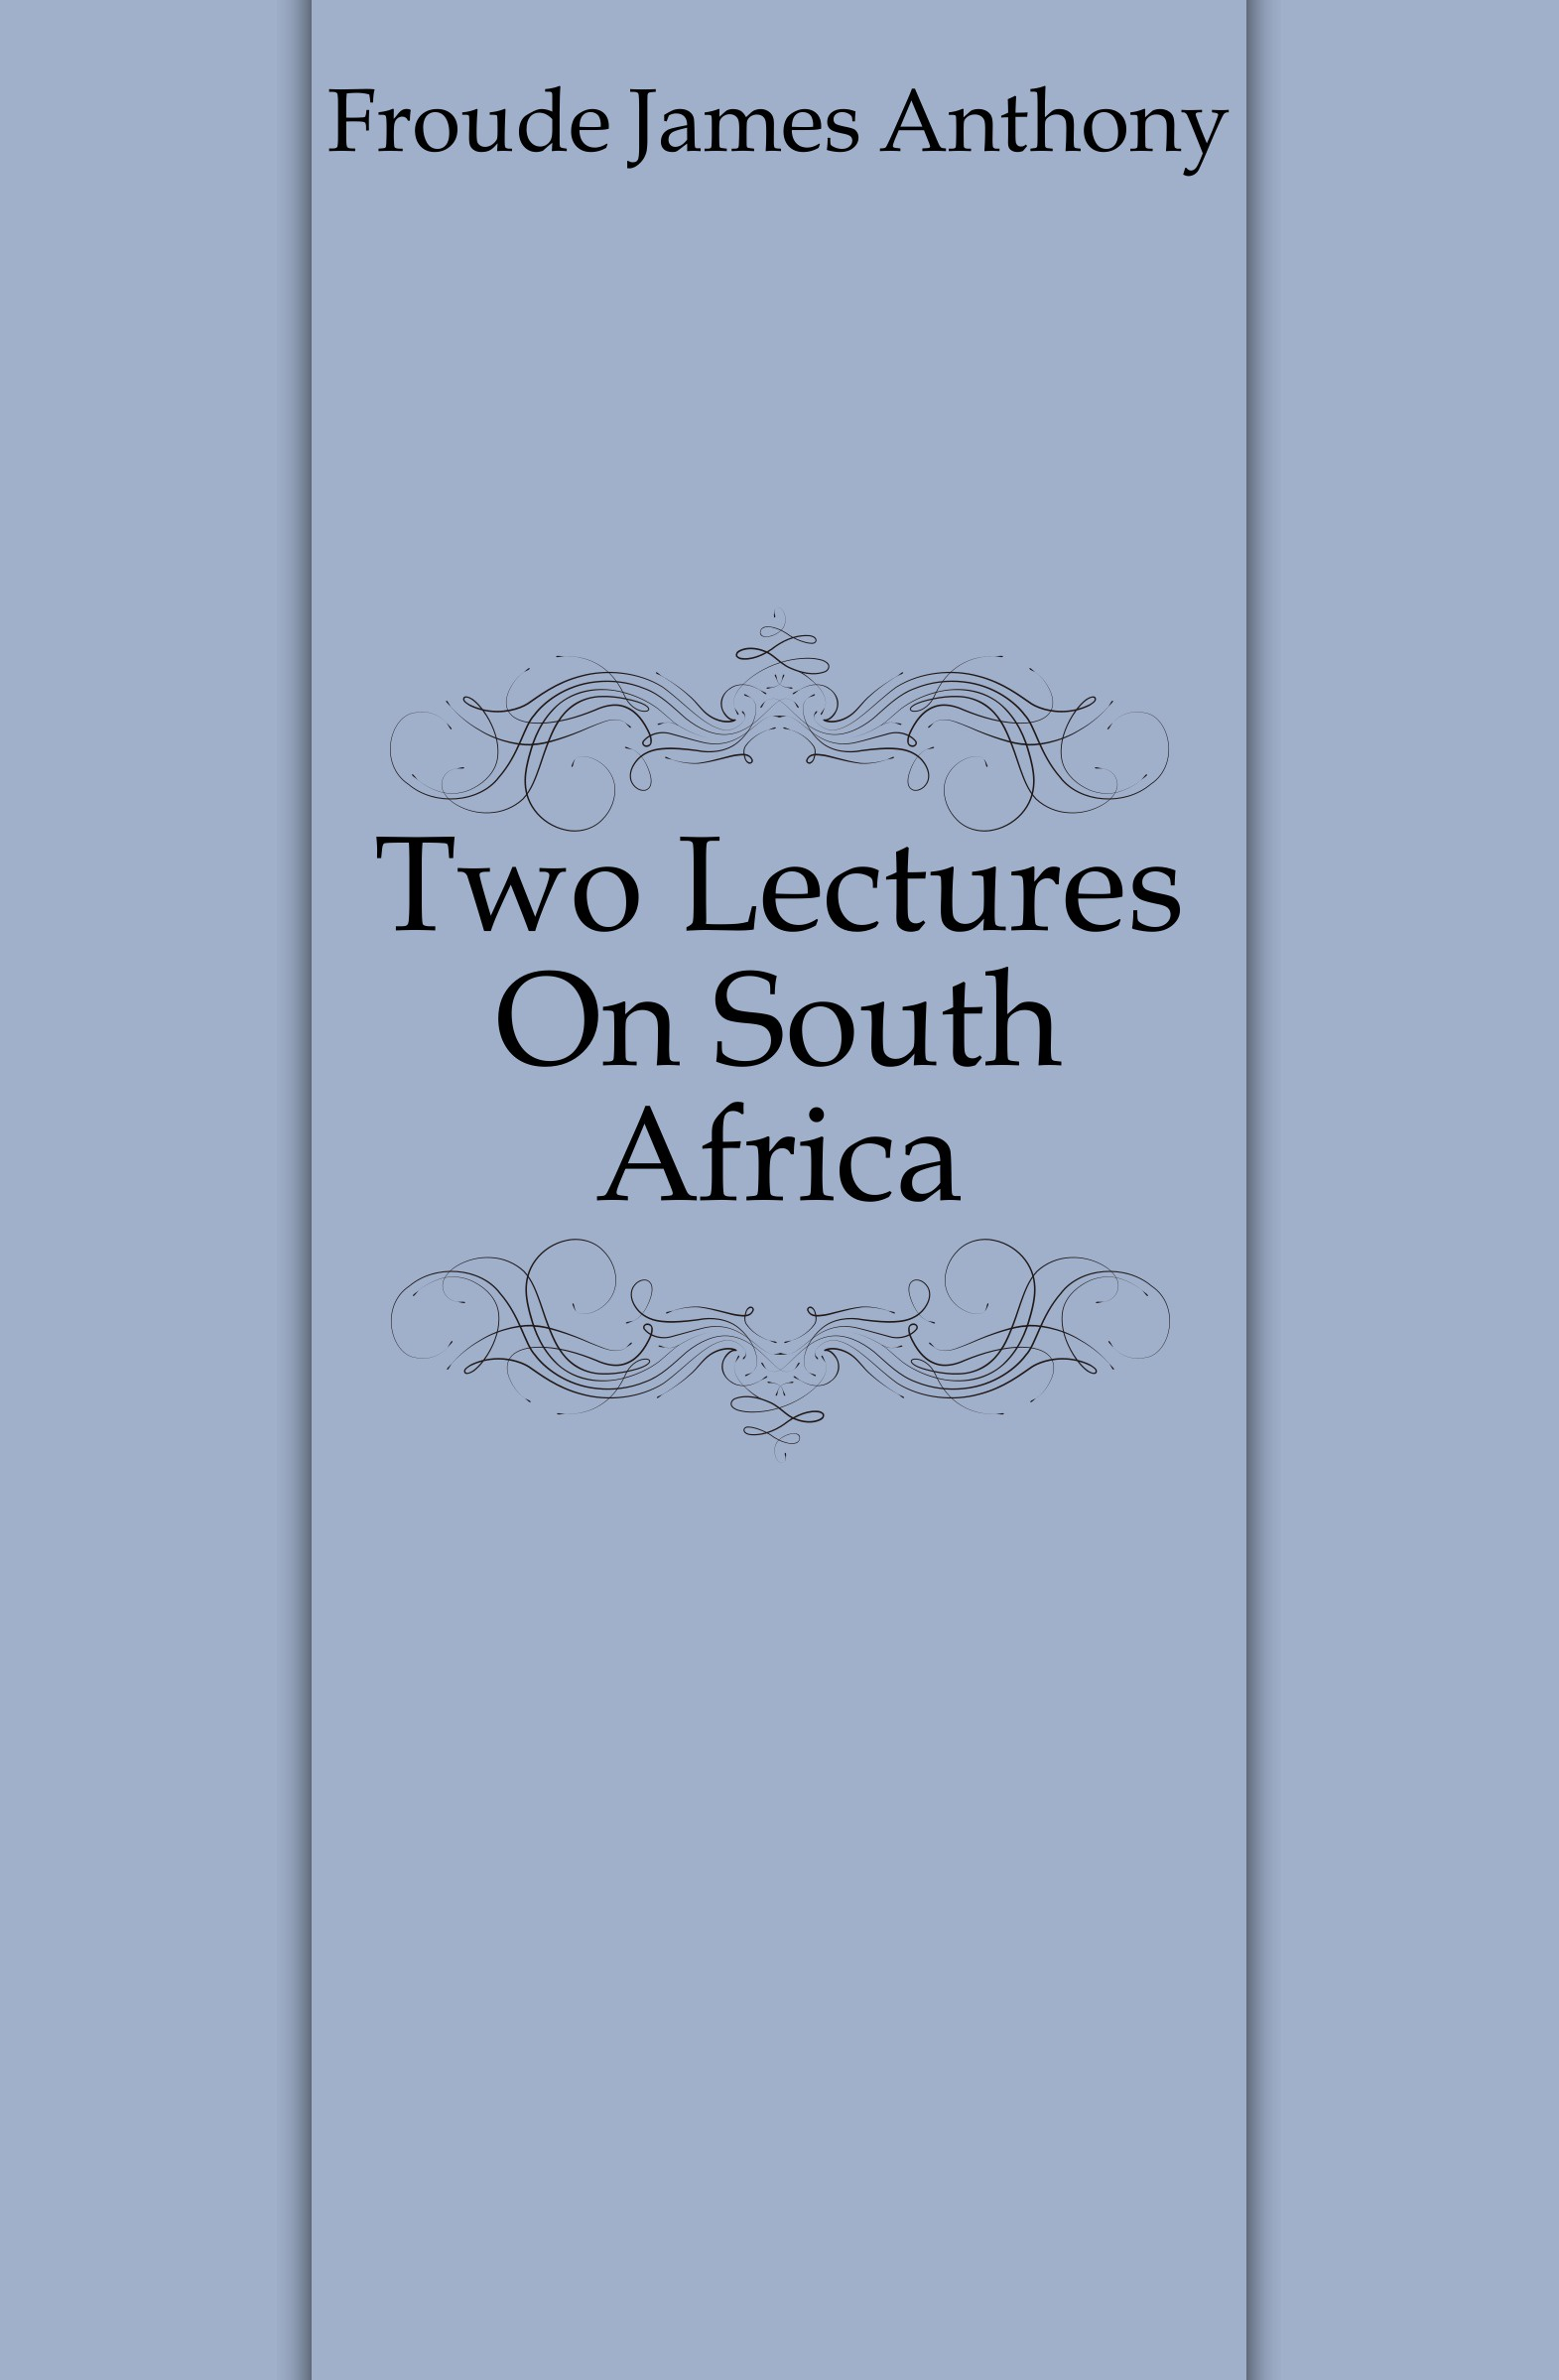 купить James Anthony Froude Two Lectures On South Africa по цене 730 рублей